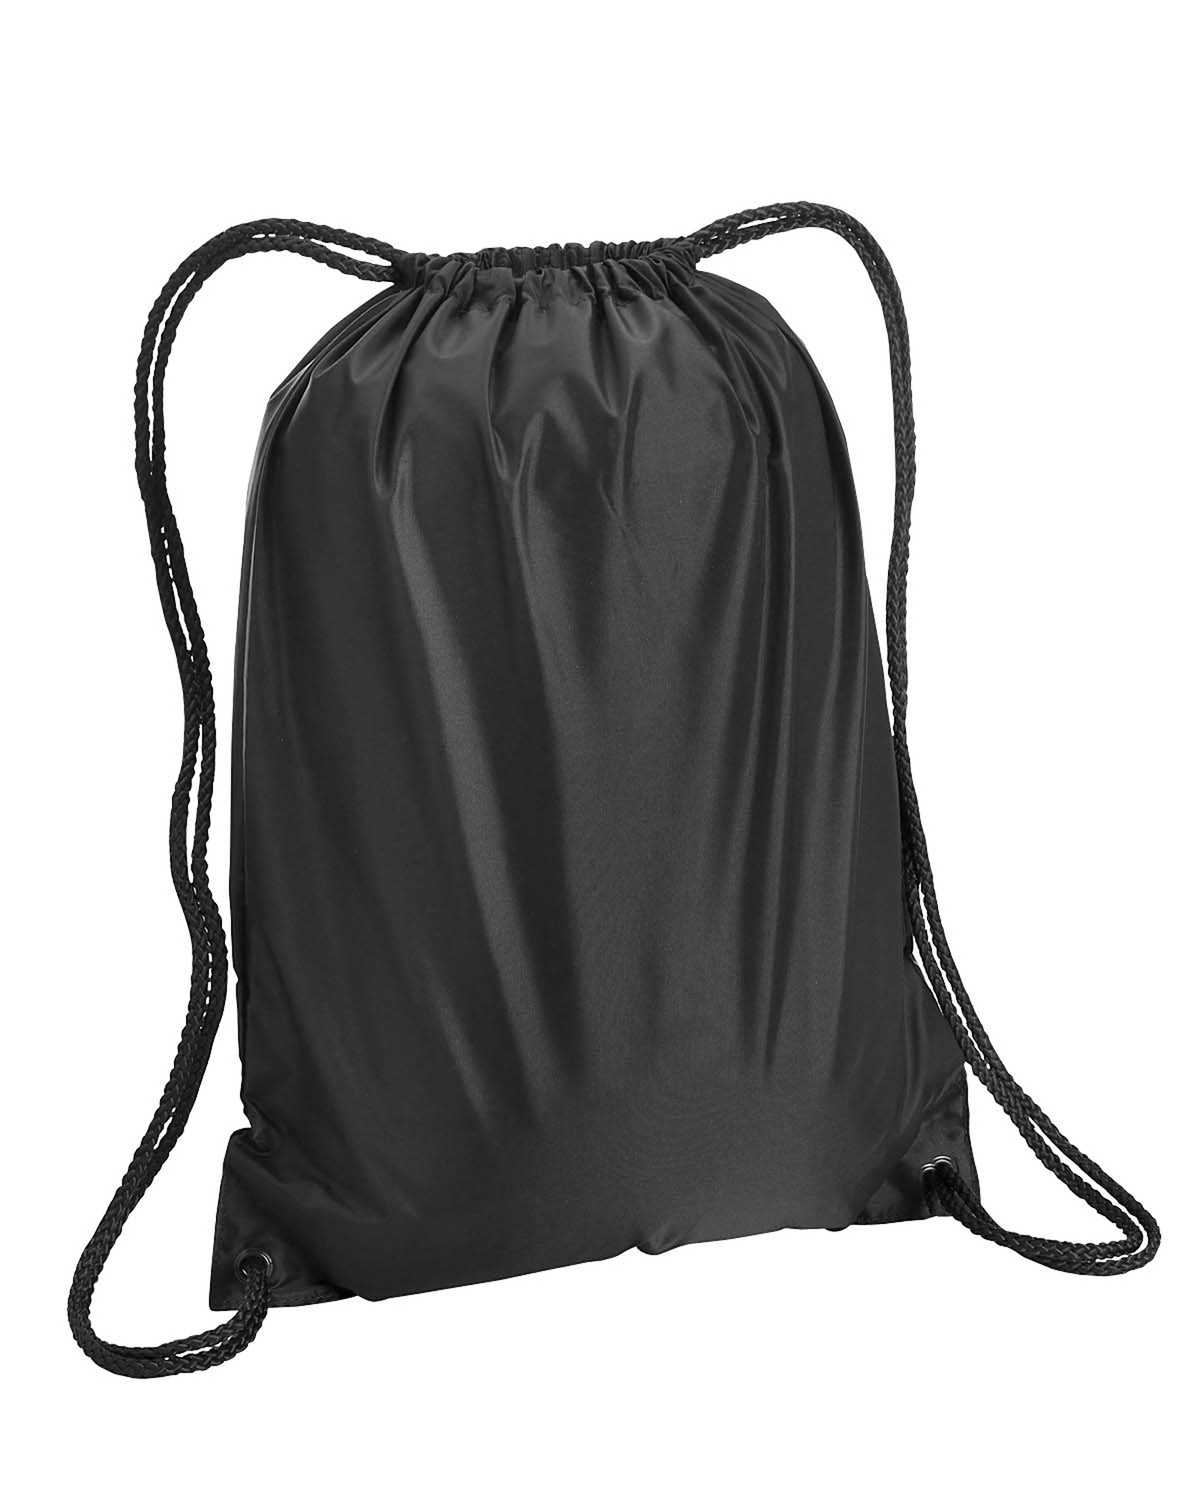 Liberty Bags 8881 - Small Drawstring Cinch Pack